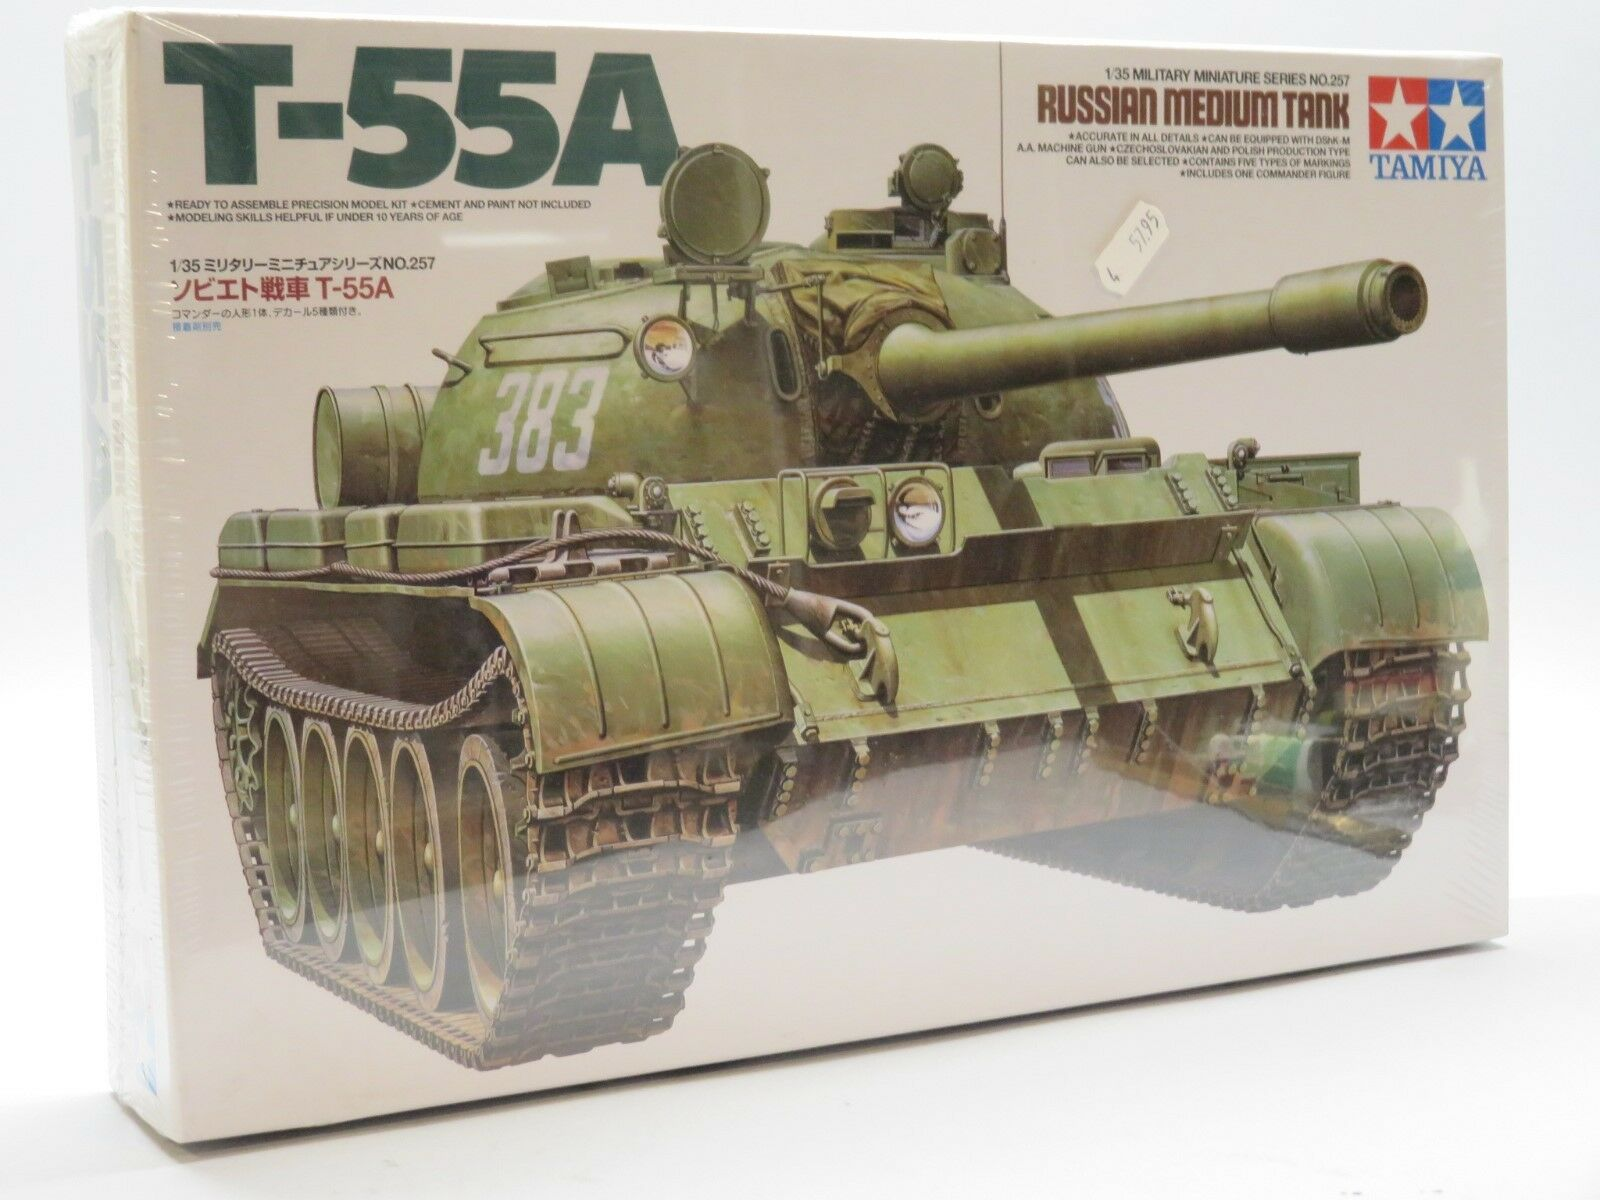 Tamiya 35257 1 35 T-55A Russian Medium Tank